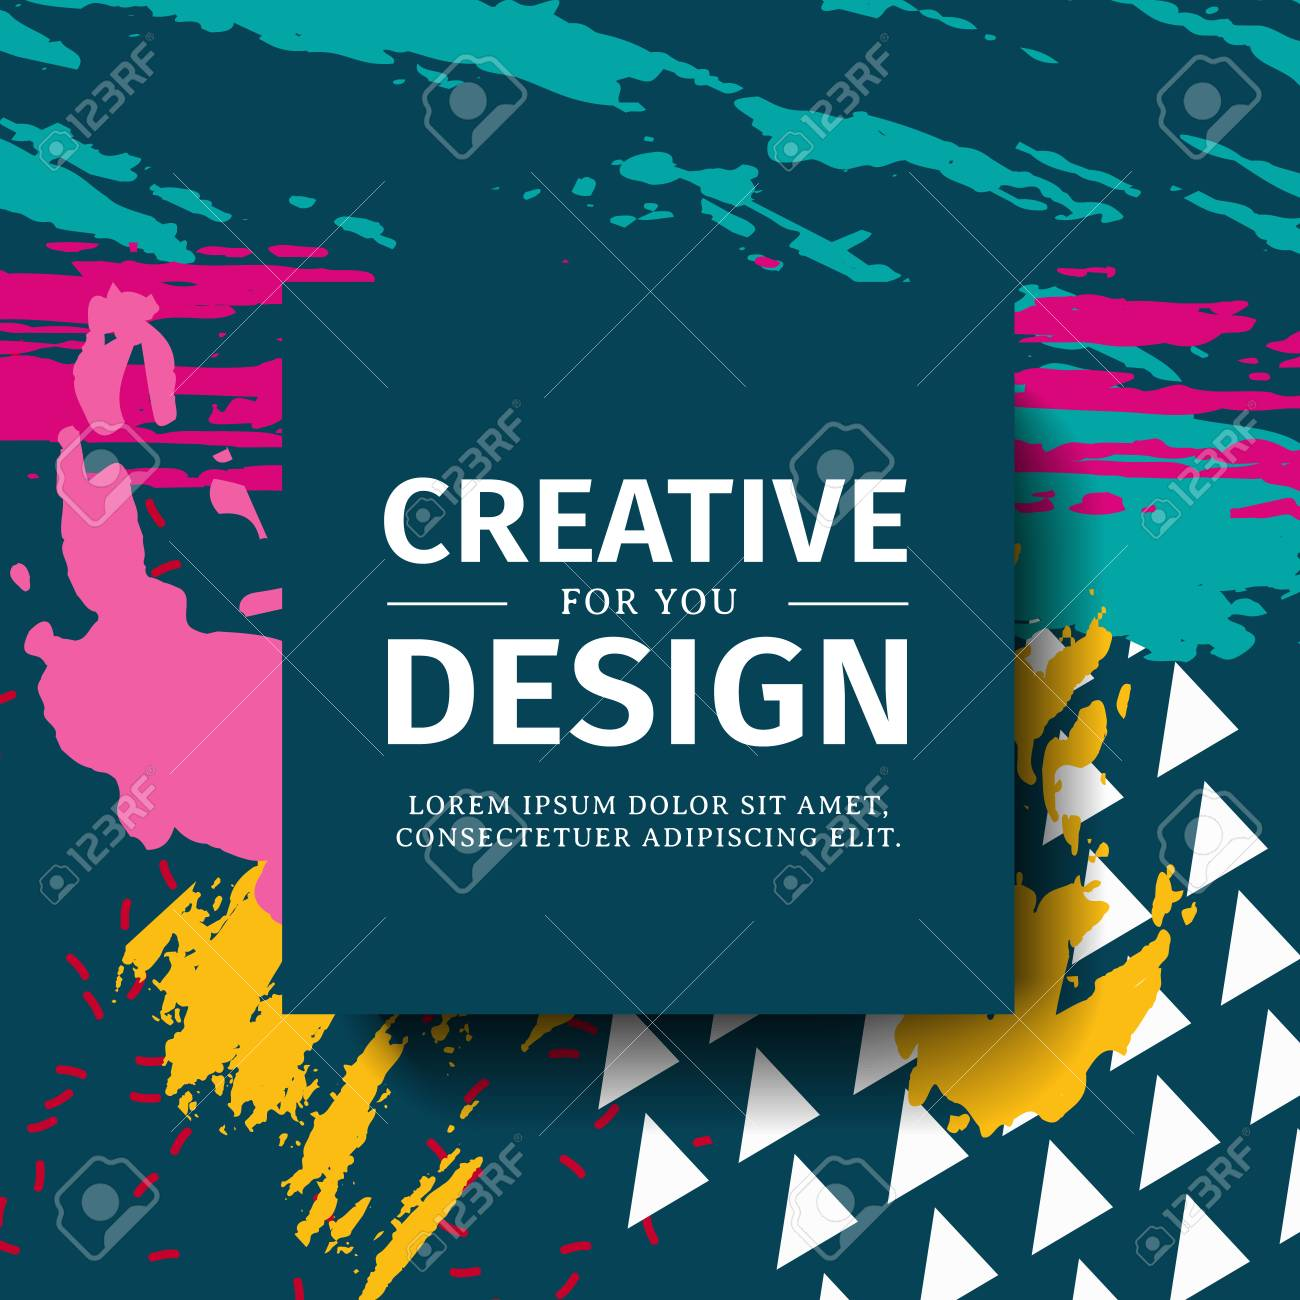 Template Design Square Banner With Pop Texture Background Poster